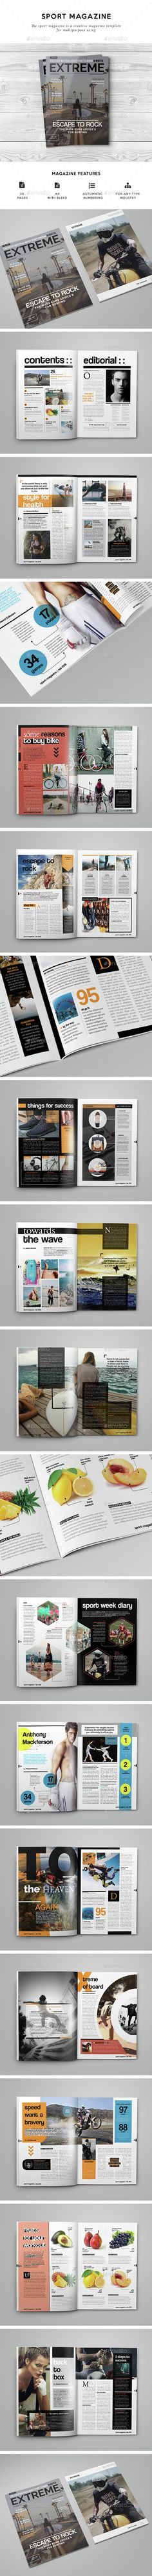 Sport Magazine 30 Unique Pages Template InDesign INDD. Download here: http://graphicriver.net/item/sport-magazine/14754930?ref=ksioks